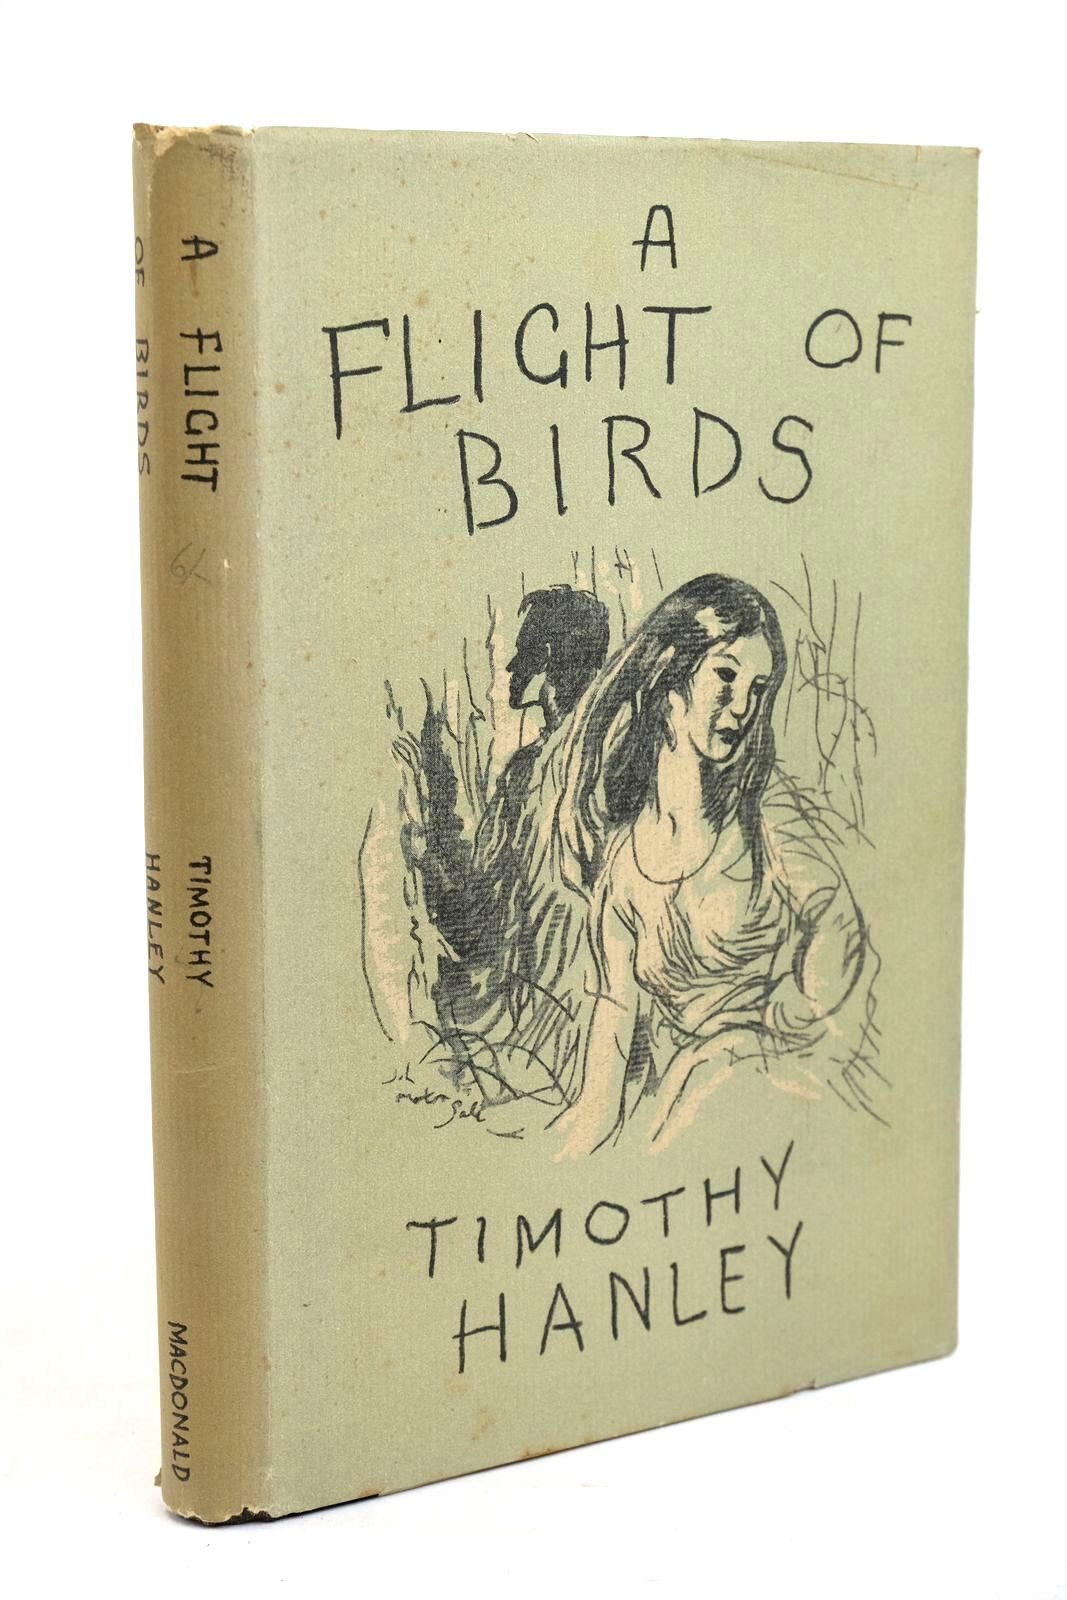 Photo of A FLIGHT OF BIRDS written by Hanley, Timothy illustrated by Morton-Sale, John published by Macdonald & Co. (Publishers) Ltd. (STOCK CODE: 1321136)  for sale by Stella & Rose's Books